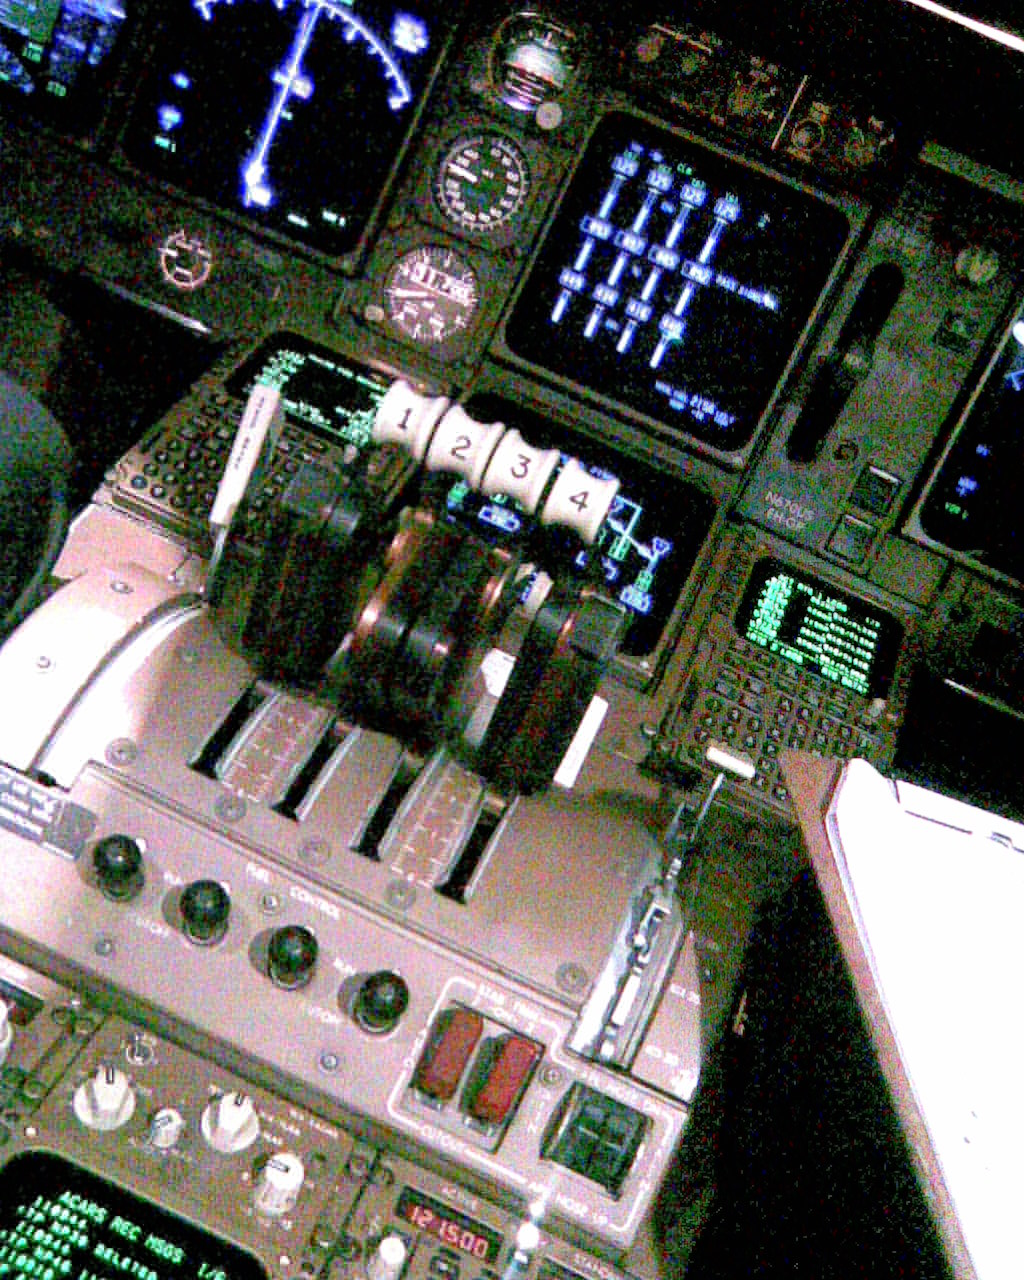 747-400 throttle quadrant